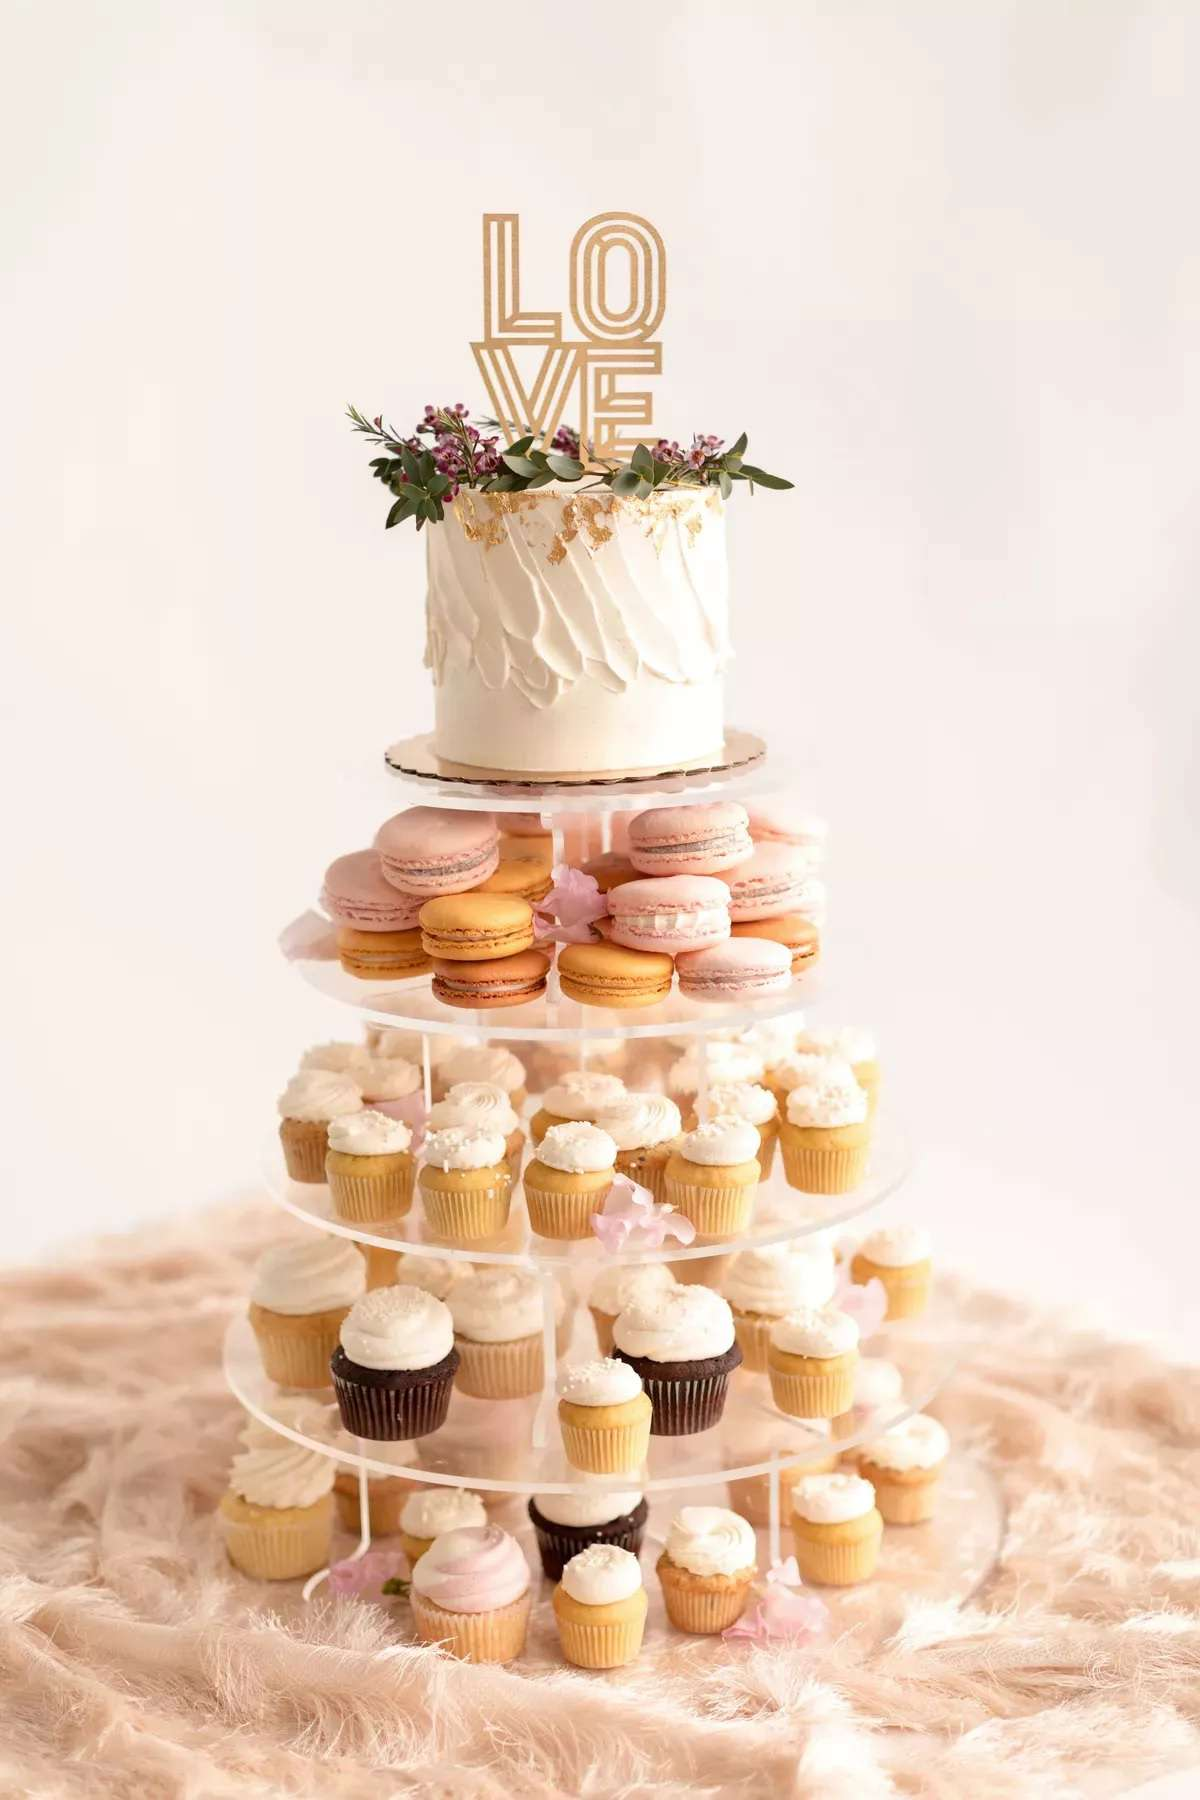 Wedding sweets tower